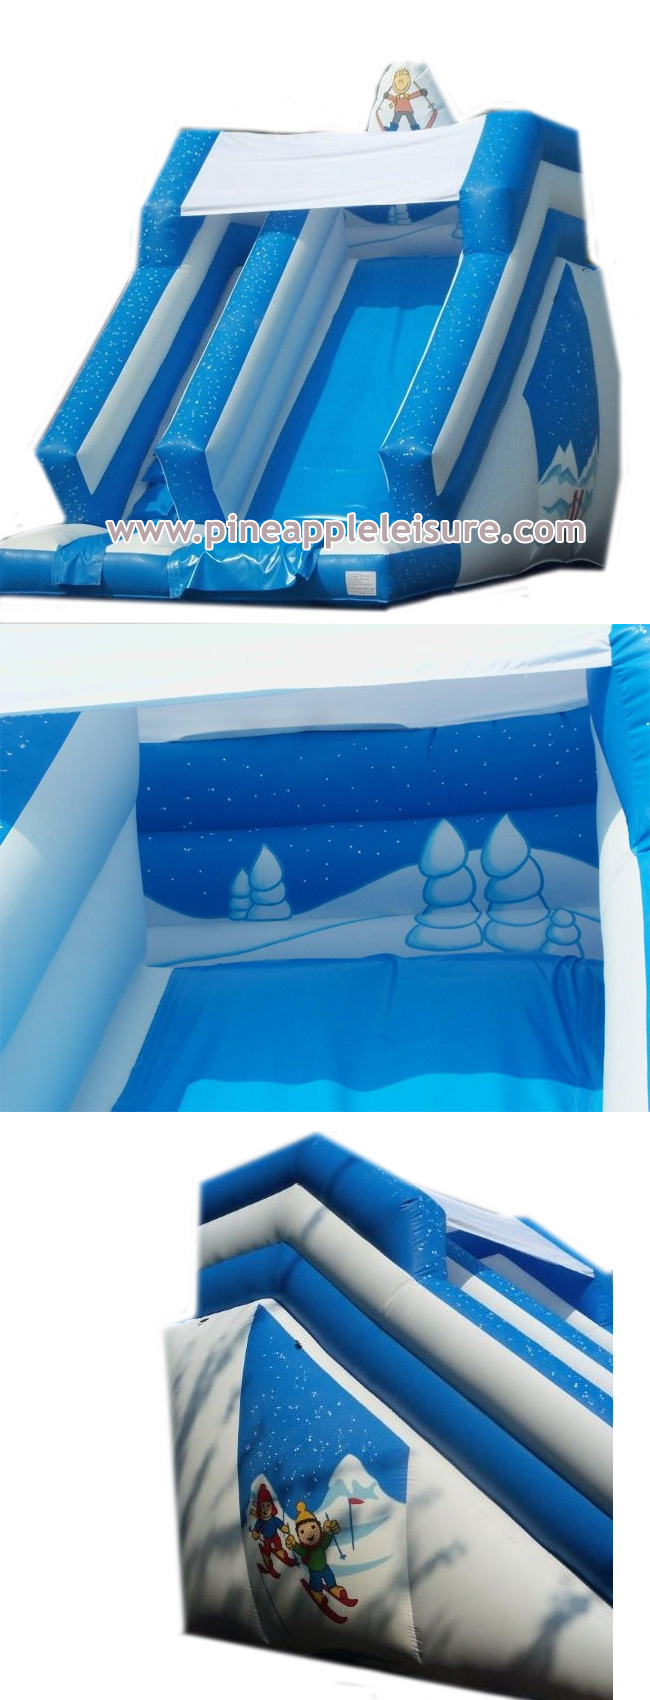 Bouncy Castle Sales - BS37 - Bouncy Inflatable for sale